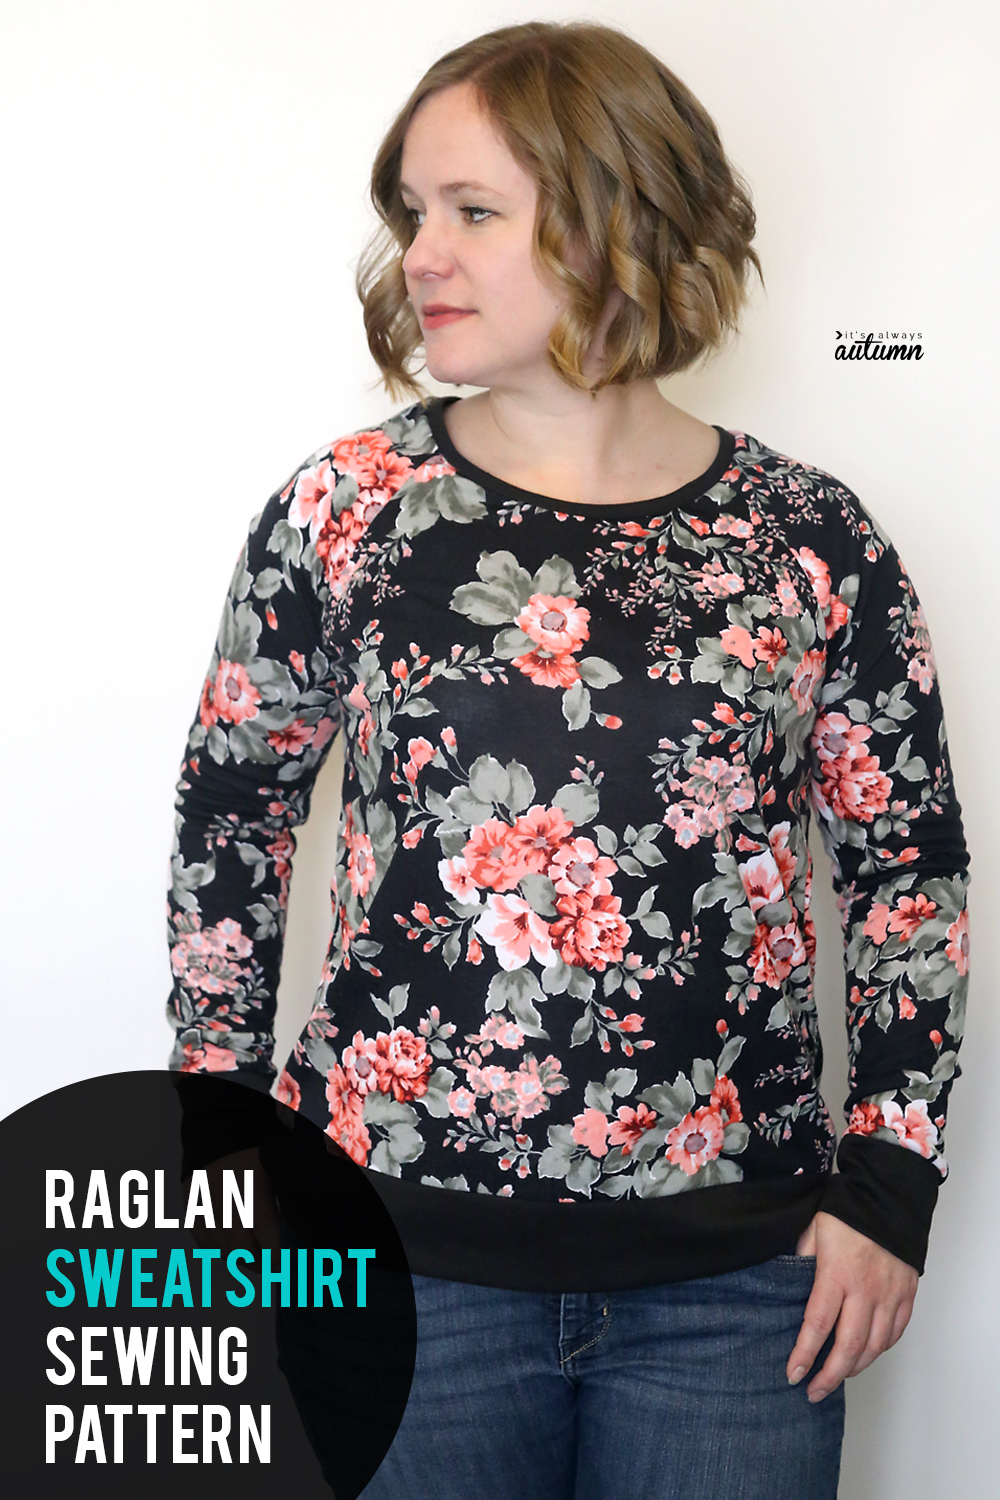 Learn how to make an adorable sweatshirt with this free raglan sweatshirt pattern and tutorial.